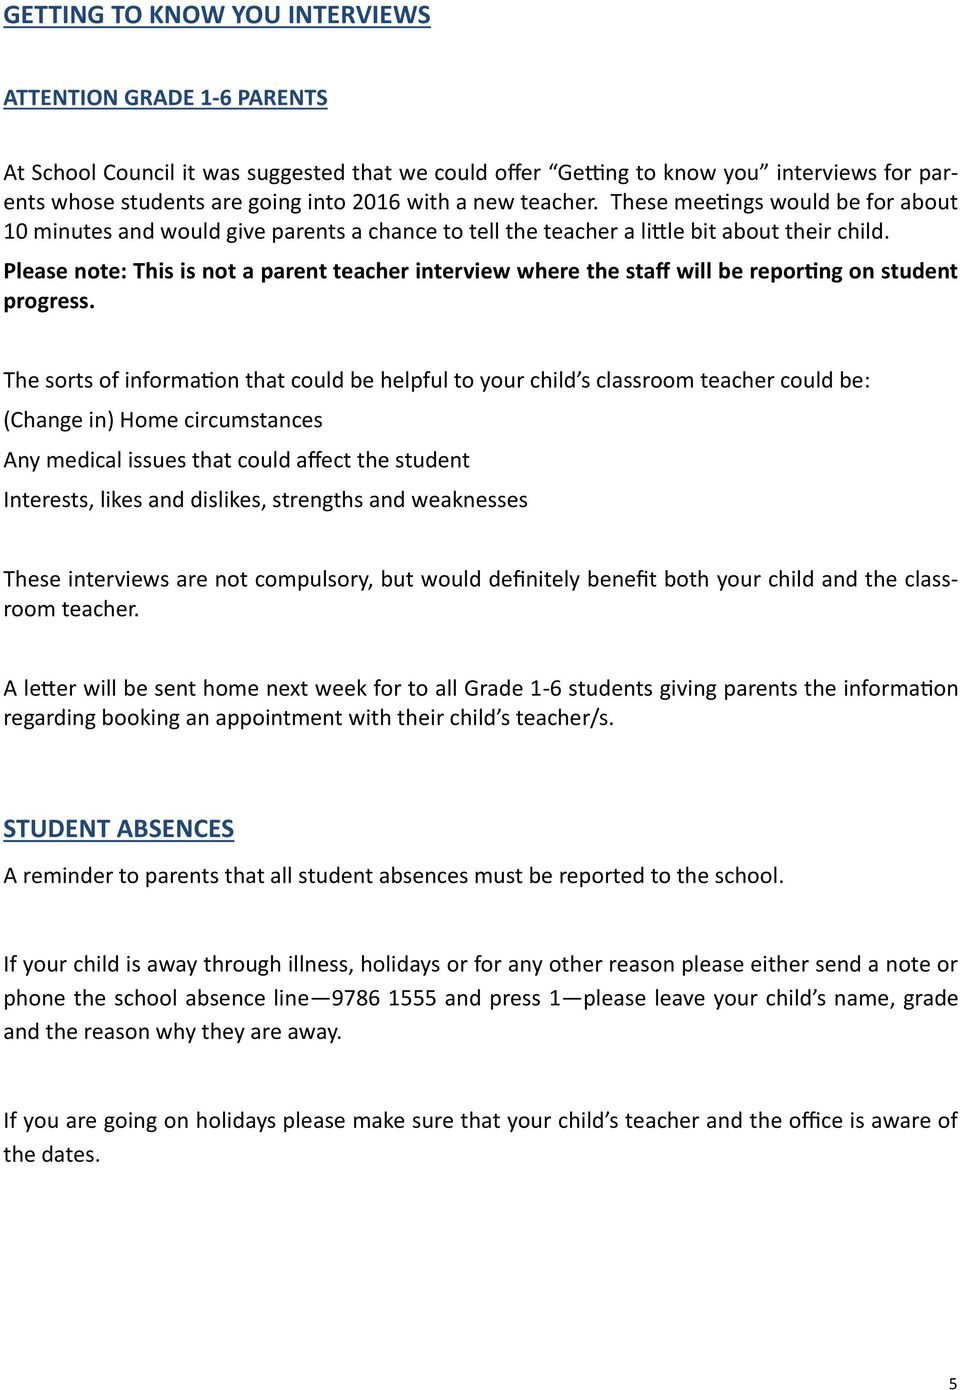 Please note: This is not a parent teacher interview where the staff will be reporting on student progress.